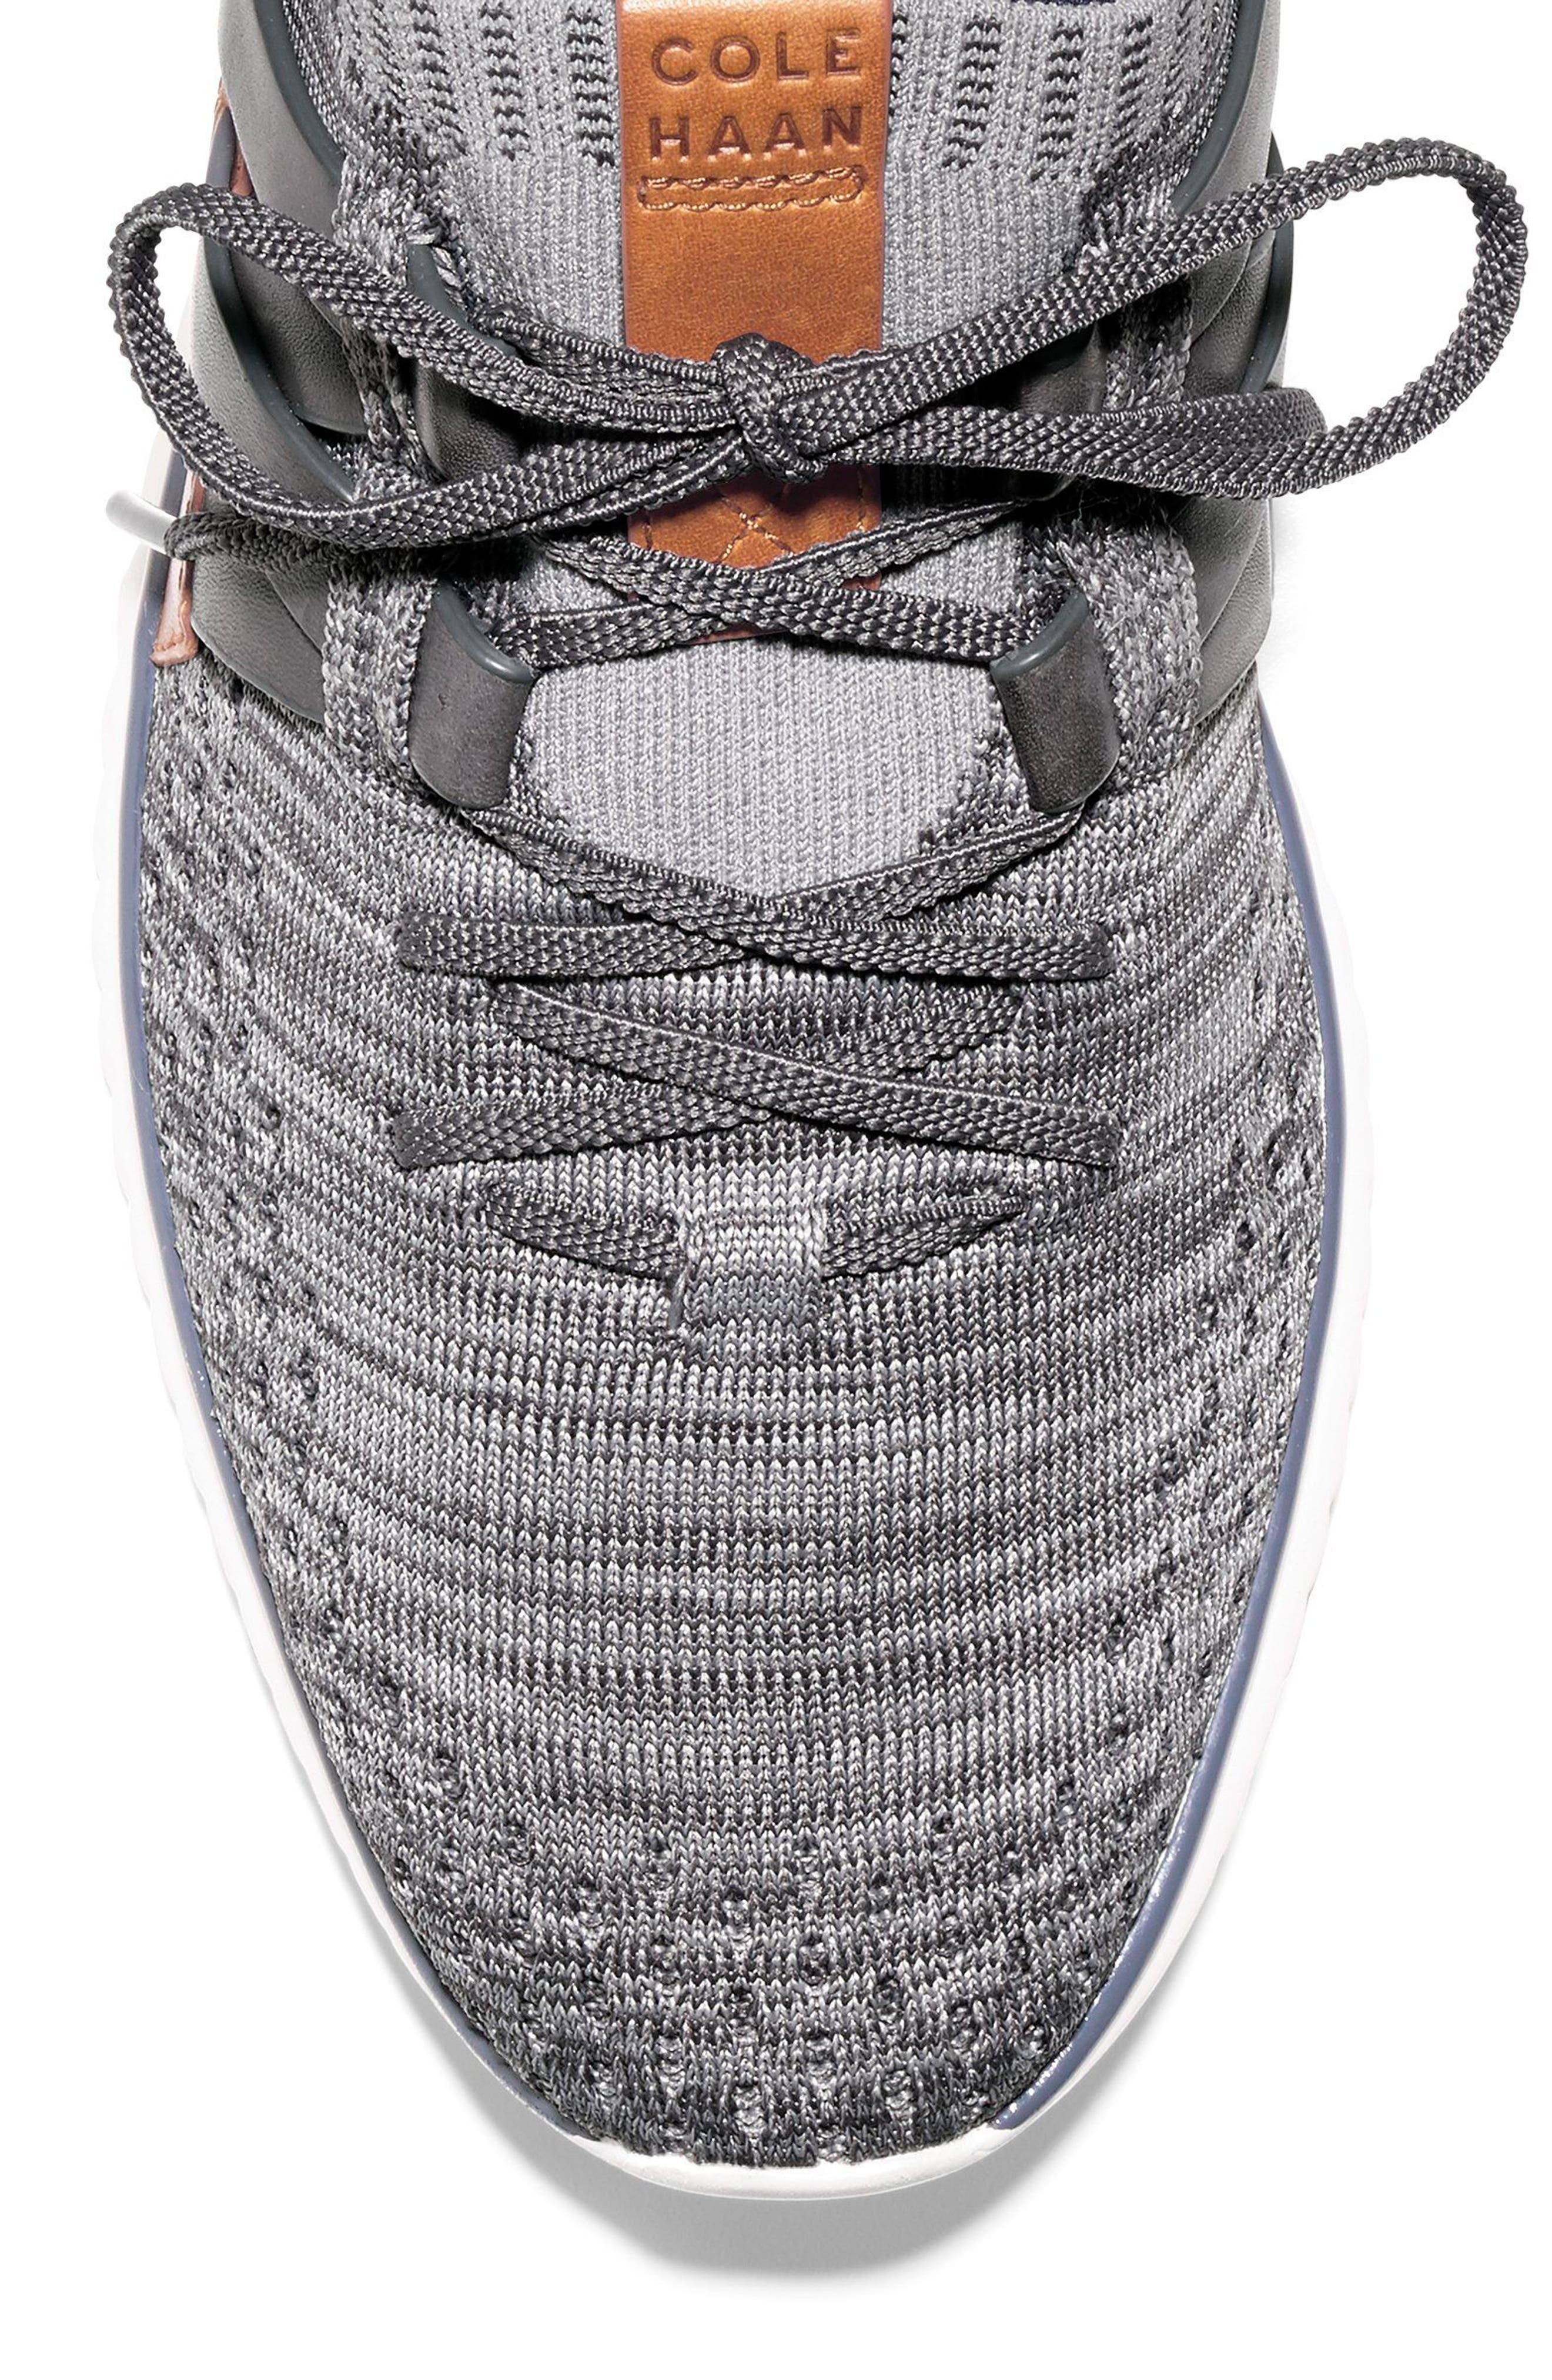 COLE HAAN,                             Grand Motion Sneaker,                             Alternate thumbnail 5, color,                             020